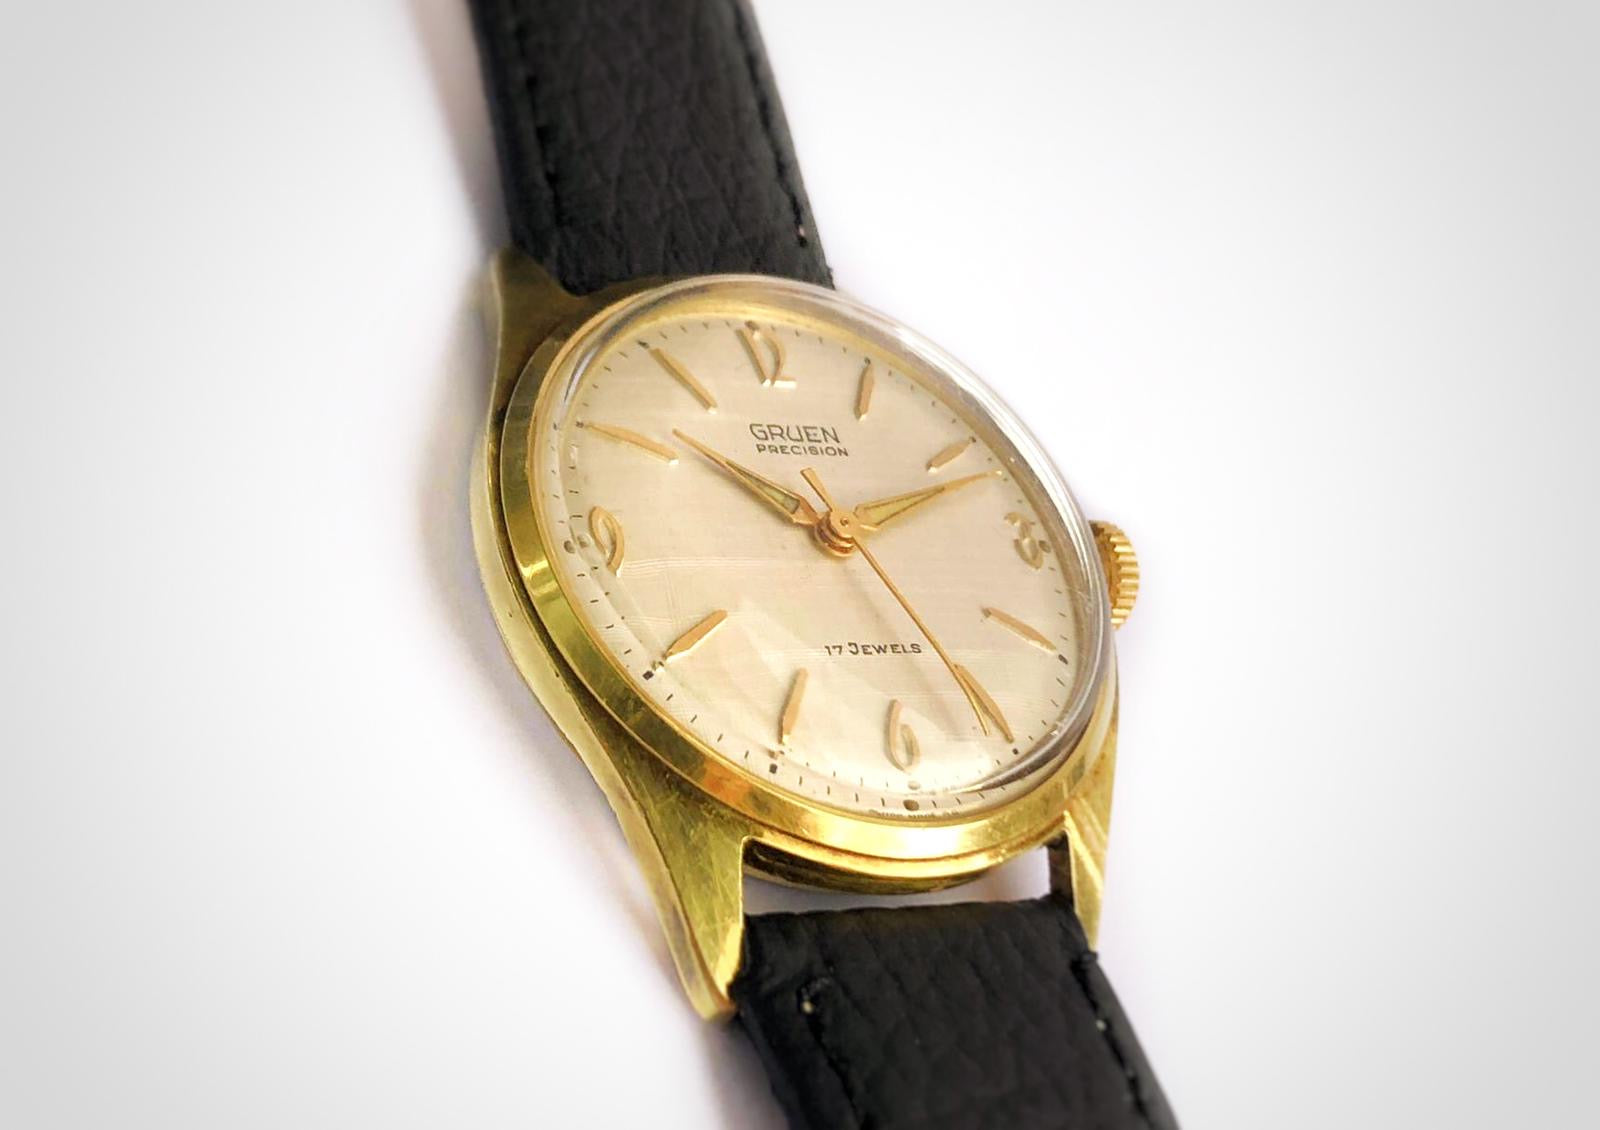 Three quarters view of Vintage watch with linen dial and 3-6-9 pattern and gold case made by Gruen. First watch worn by James Bond as Sean Connery